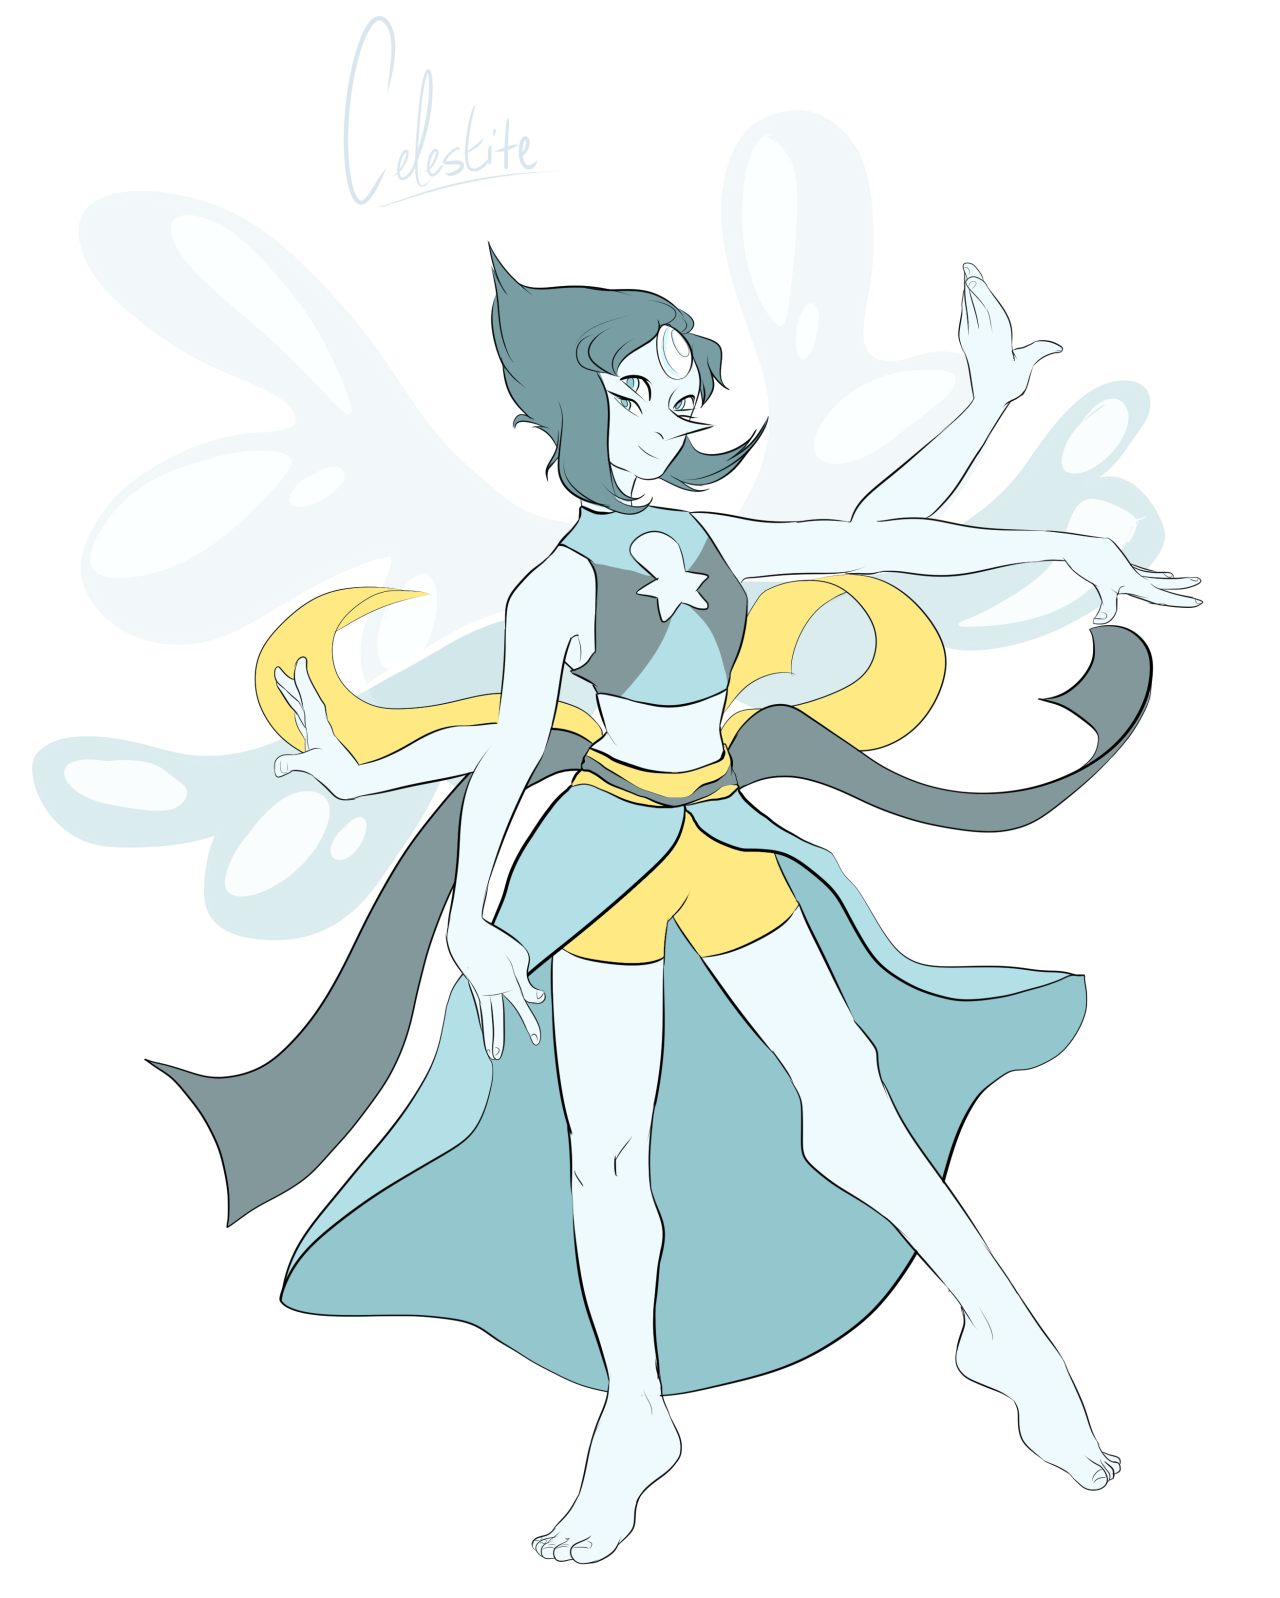 Slight revamp of Celestite's coloration - I felt the yellow would give more contrast and make her design pop a little more!